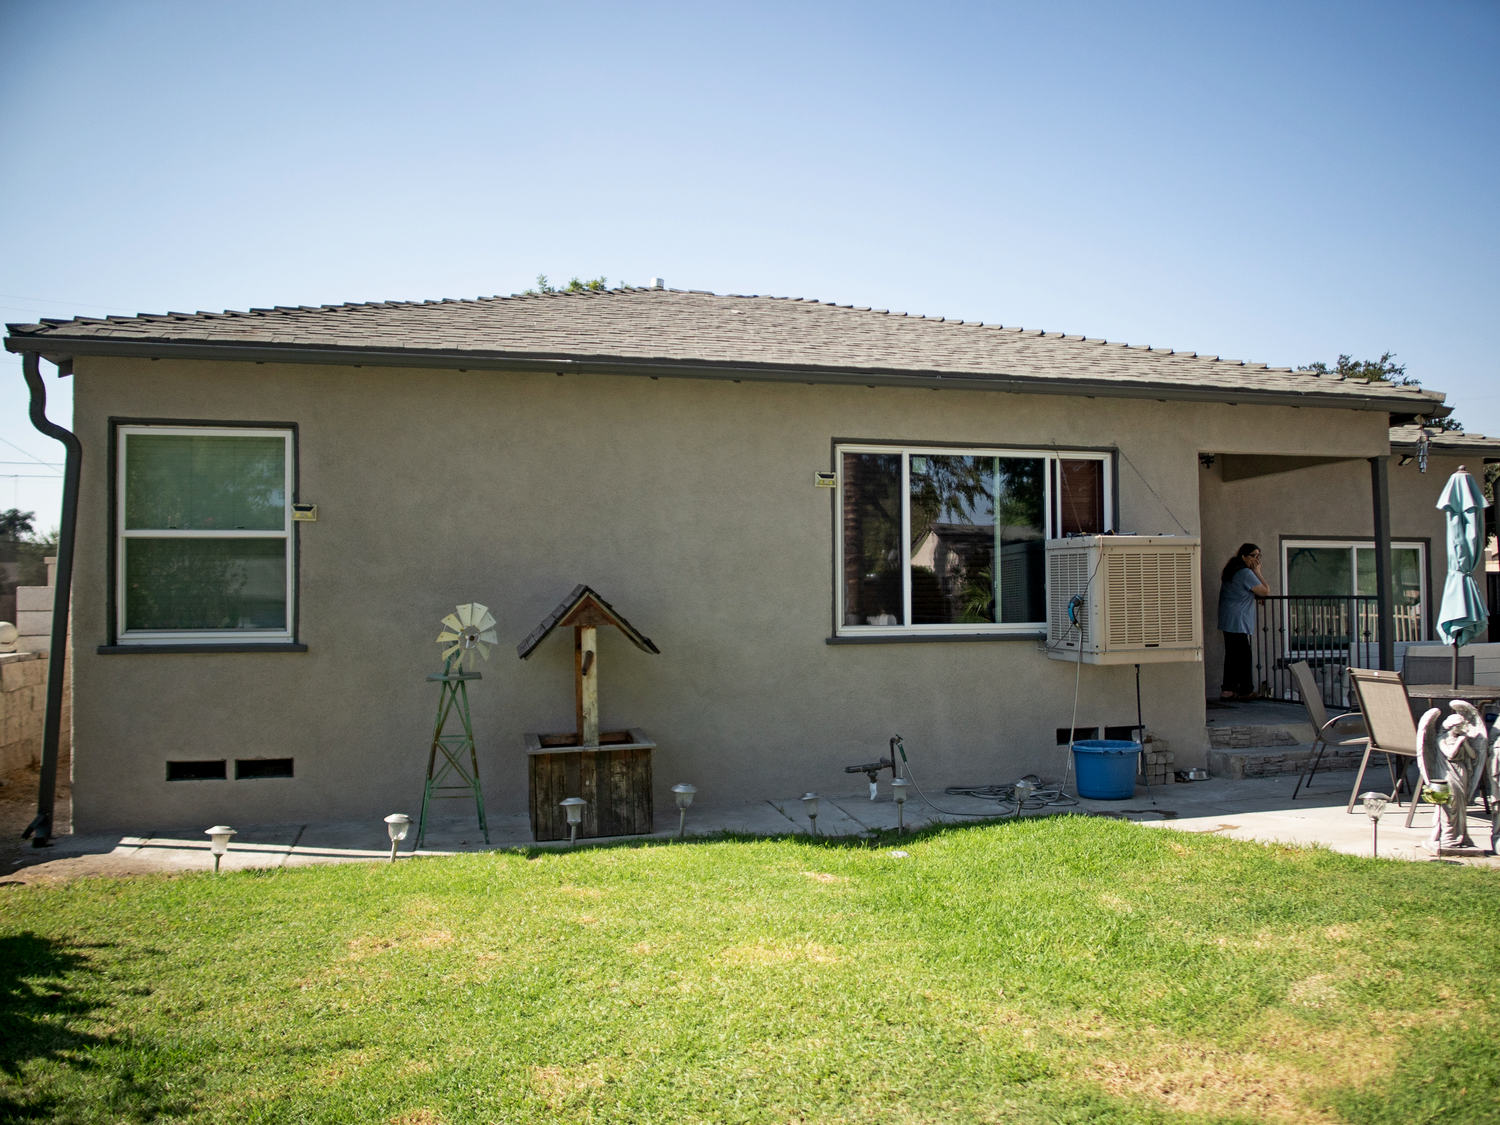 Windows Replacement in San Bernardino, CA